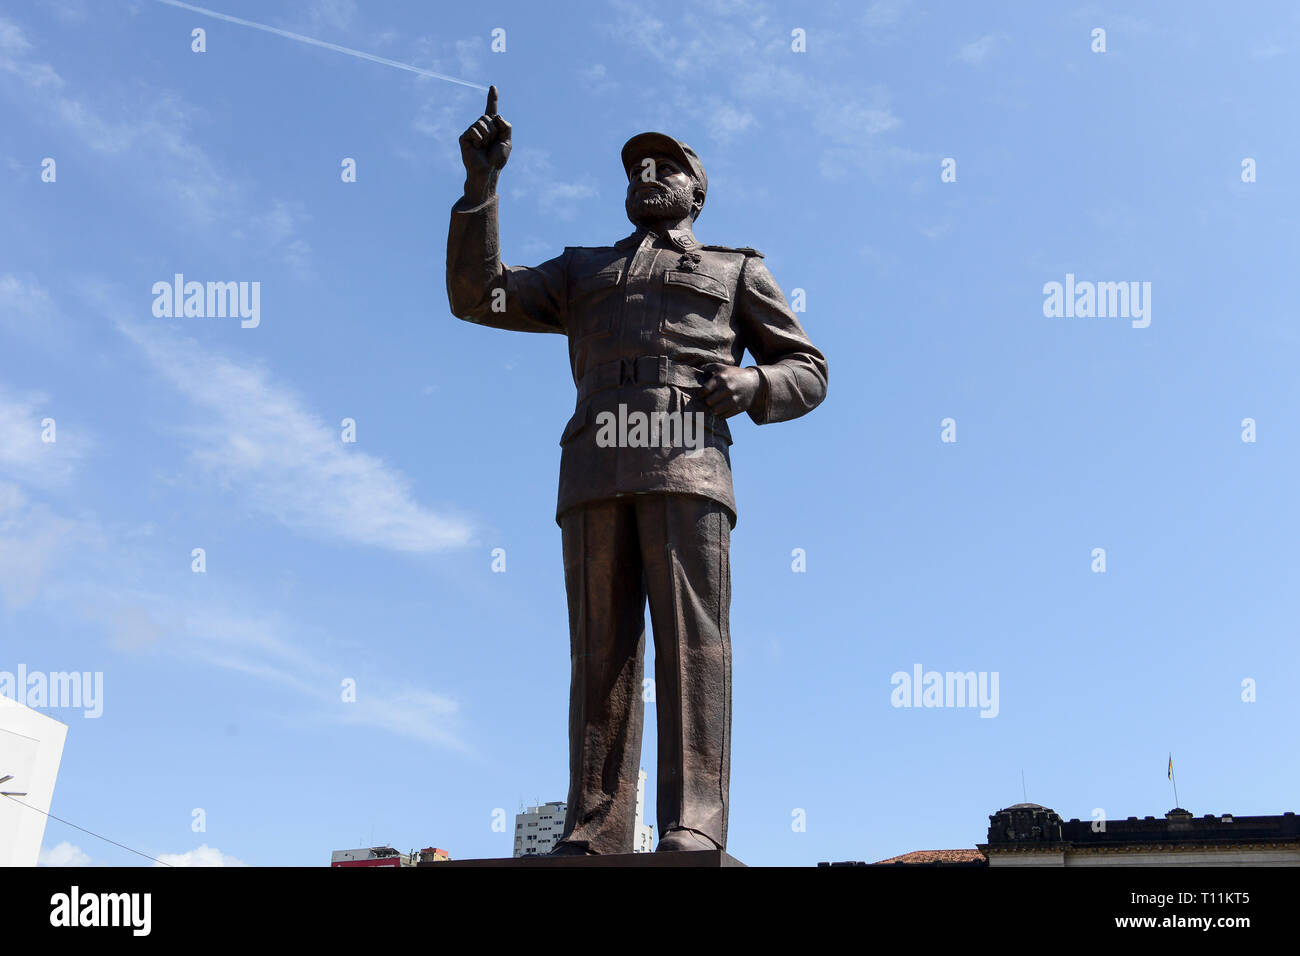 MOZAMBIQUE, Maputo, Praça da Independência, Independence square, memorial for Samora Moisés Machel 1933-1986 , since 1970 leader of FRELIMO the movement for independance and first president of Mozambique 1975-1986 - Stock Image